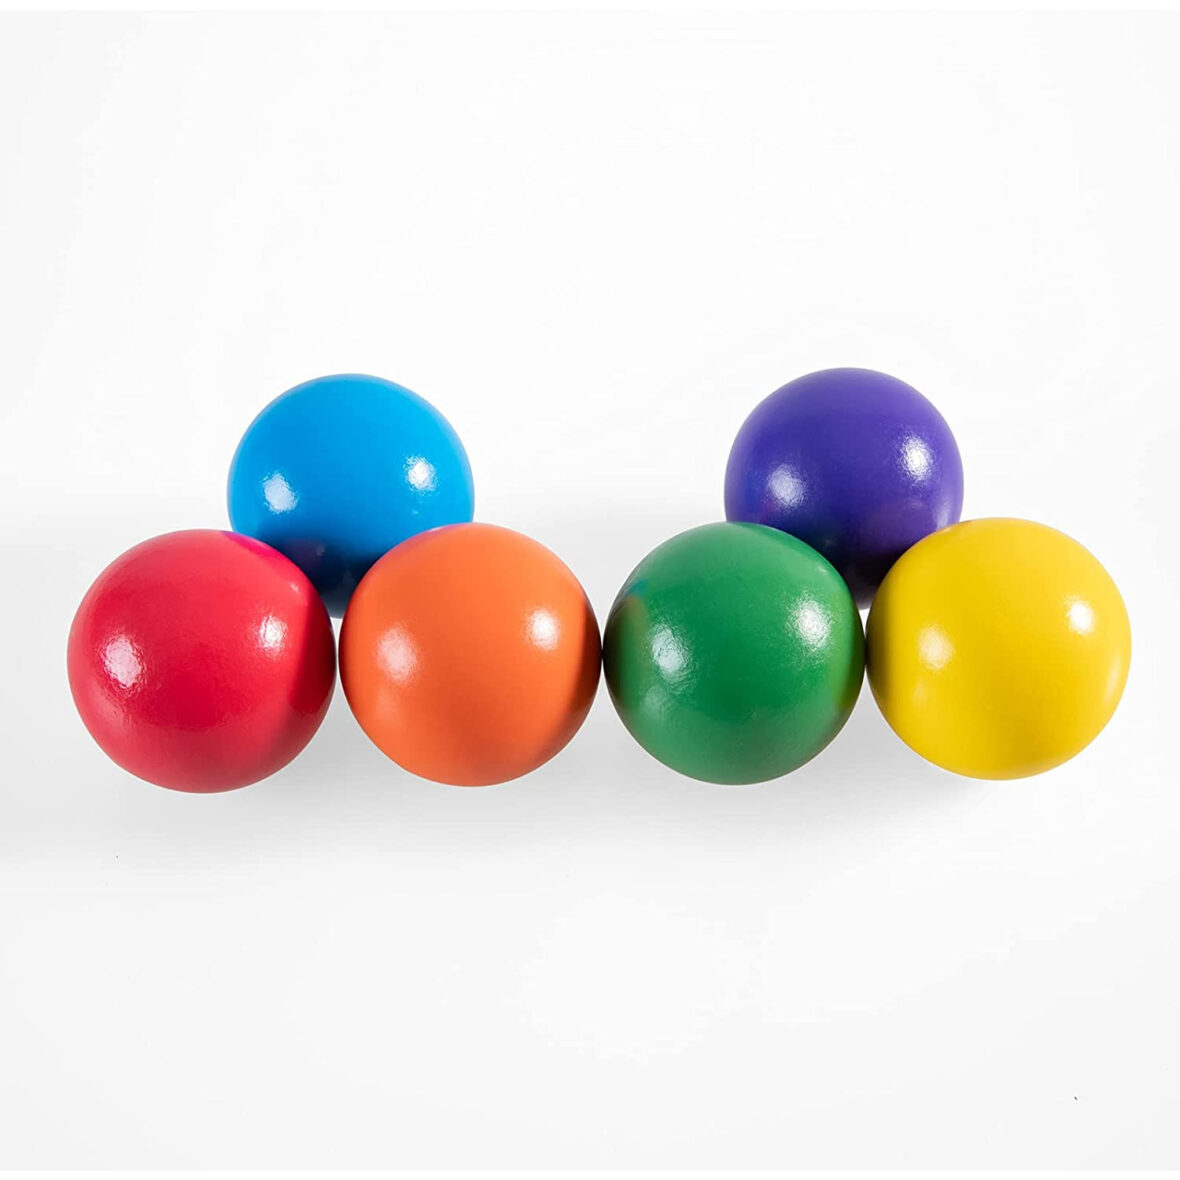 6 pcs Colorful Wooden Ball